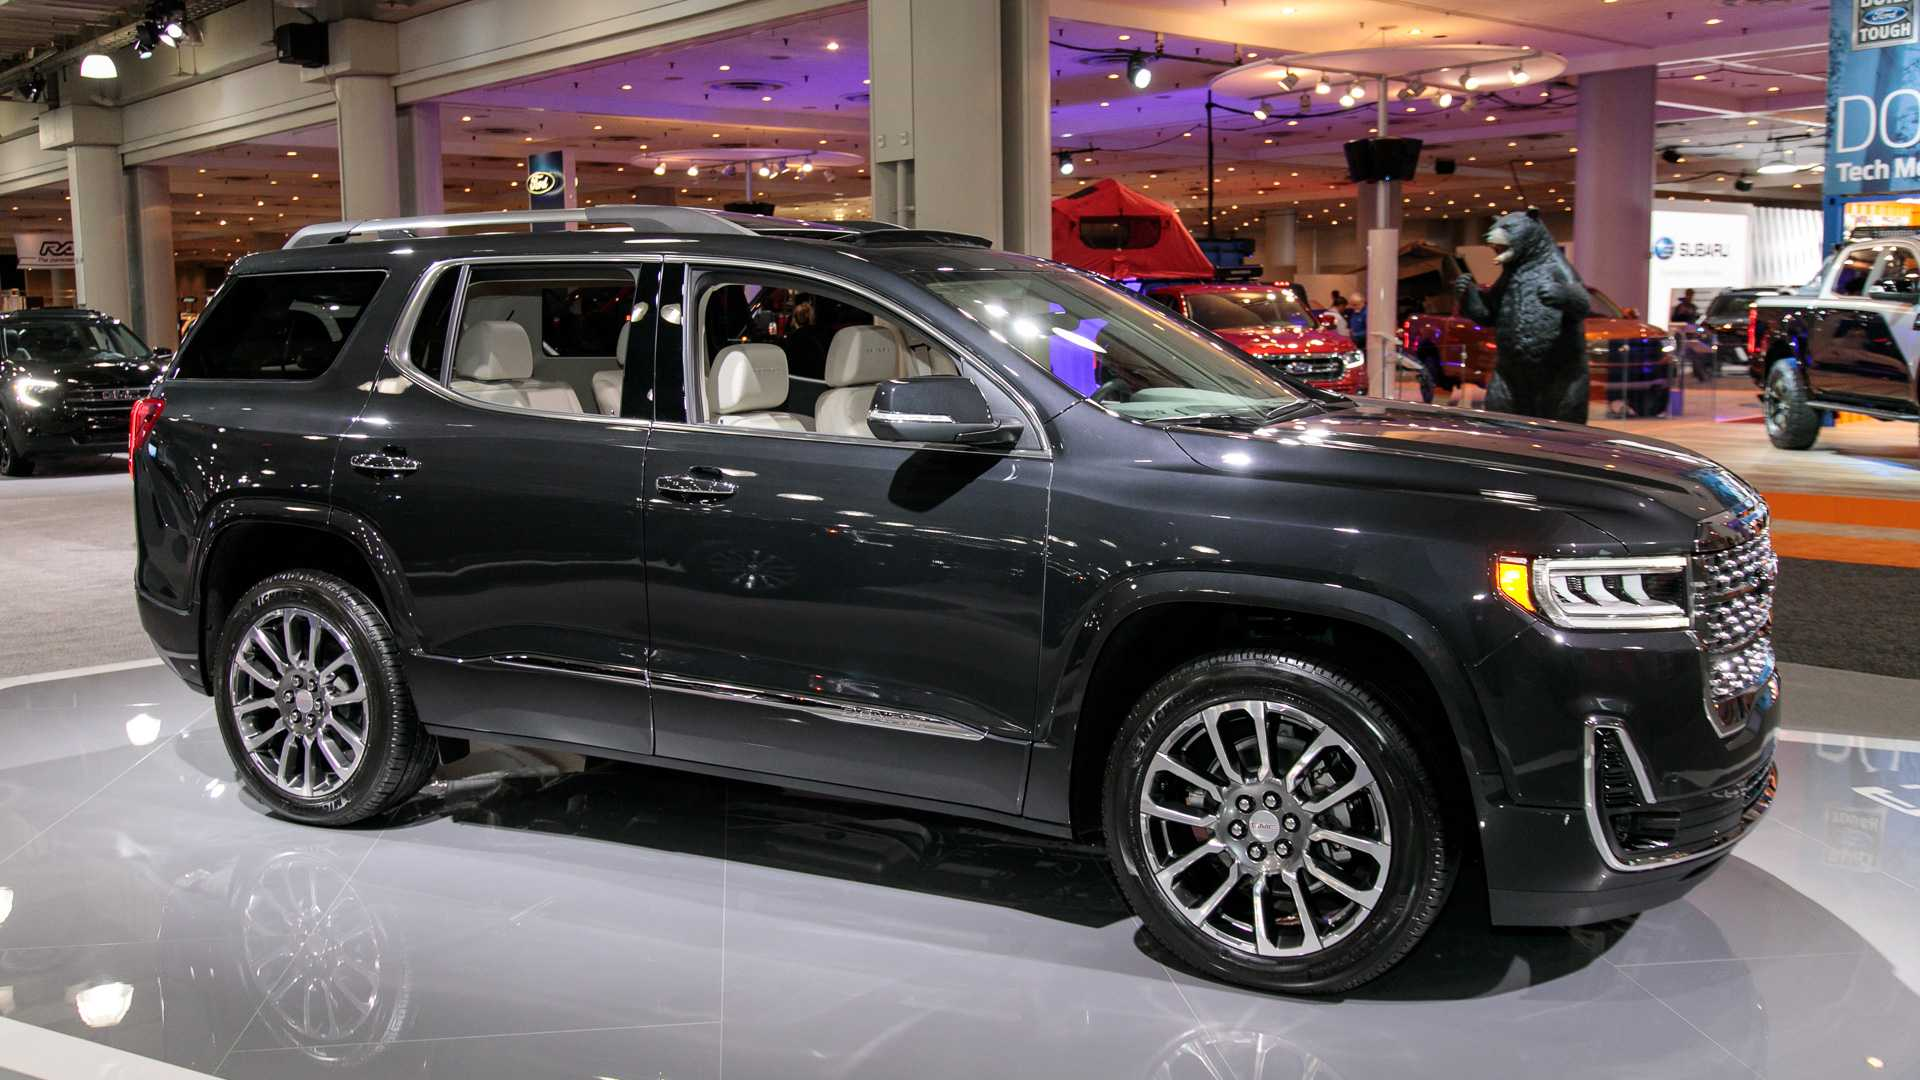 83 The Best 2020 Gmc Acadia Denali Photos